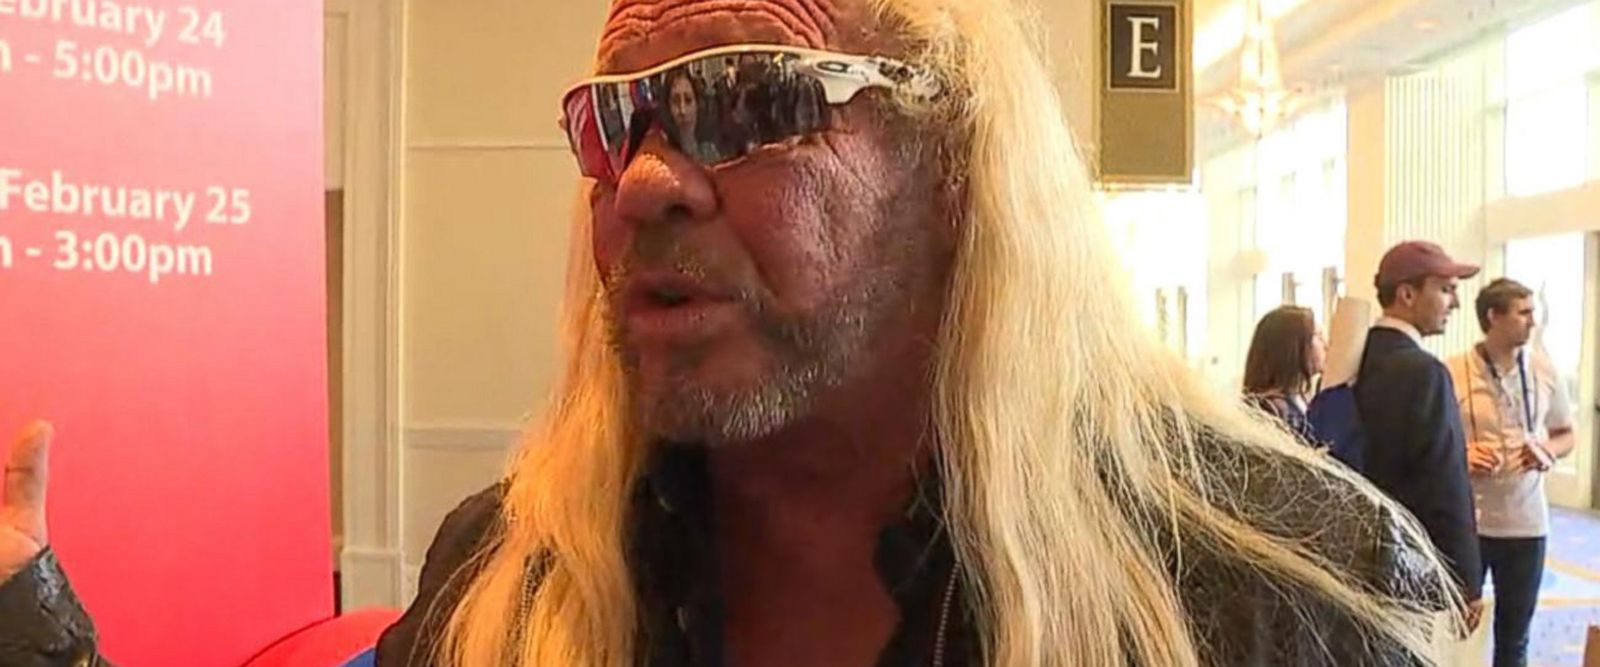 VIDEO: Dog the Bounty Hunter at CPAC day 3